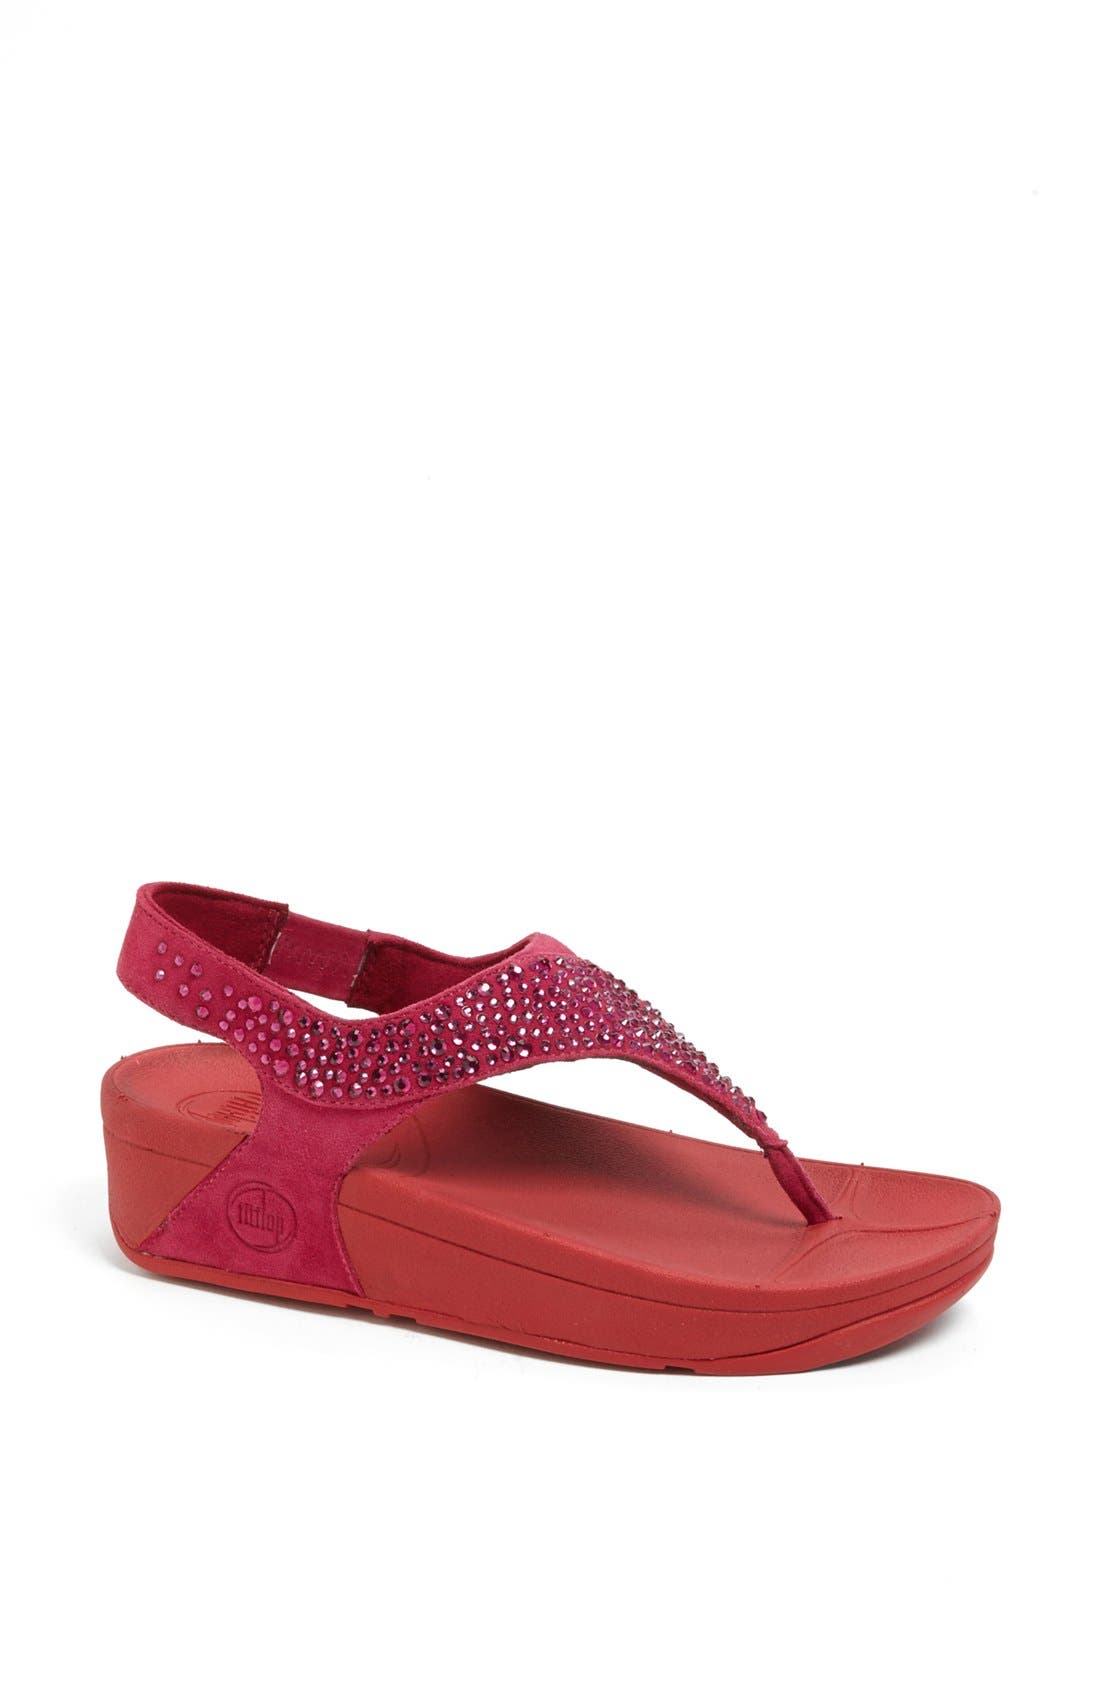 Alternate Image 1 Selected - FitFlop 'Suisei™' Sandal (Online Only)